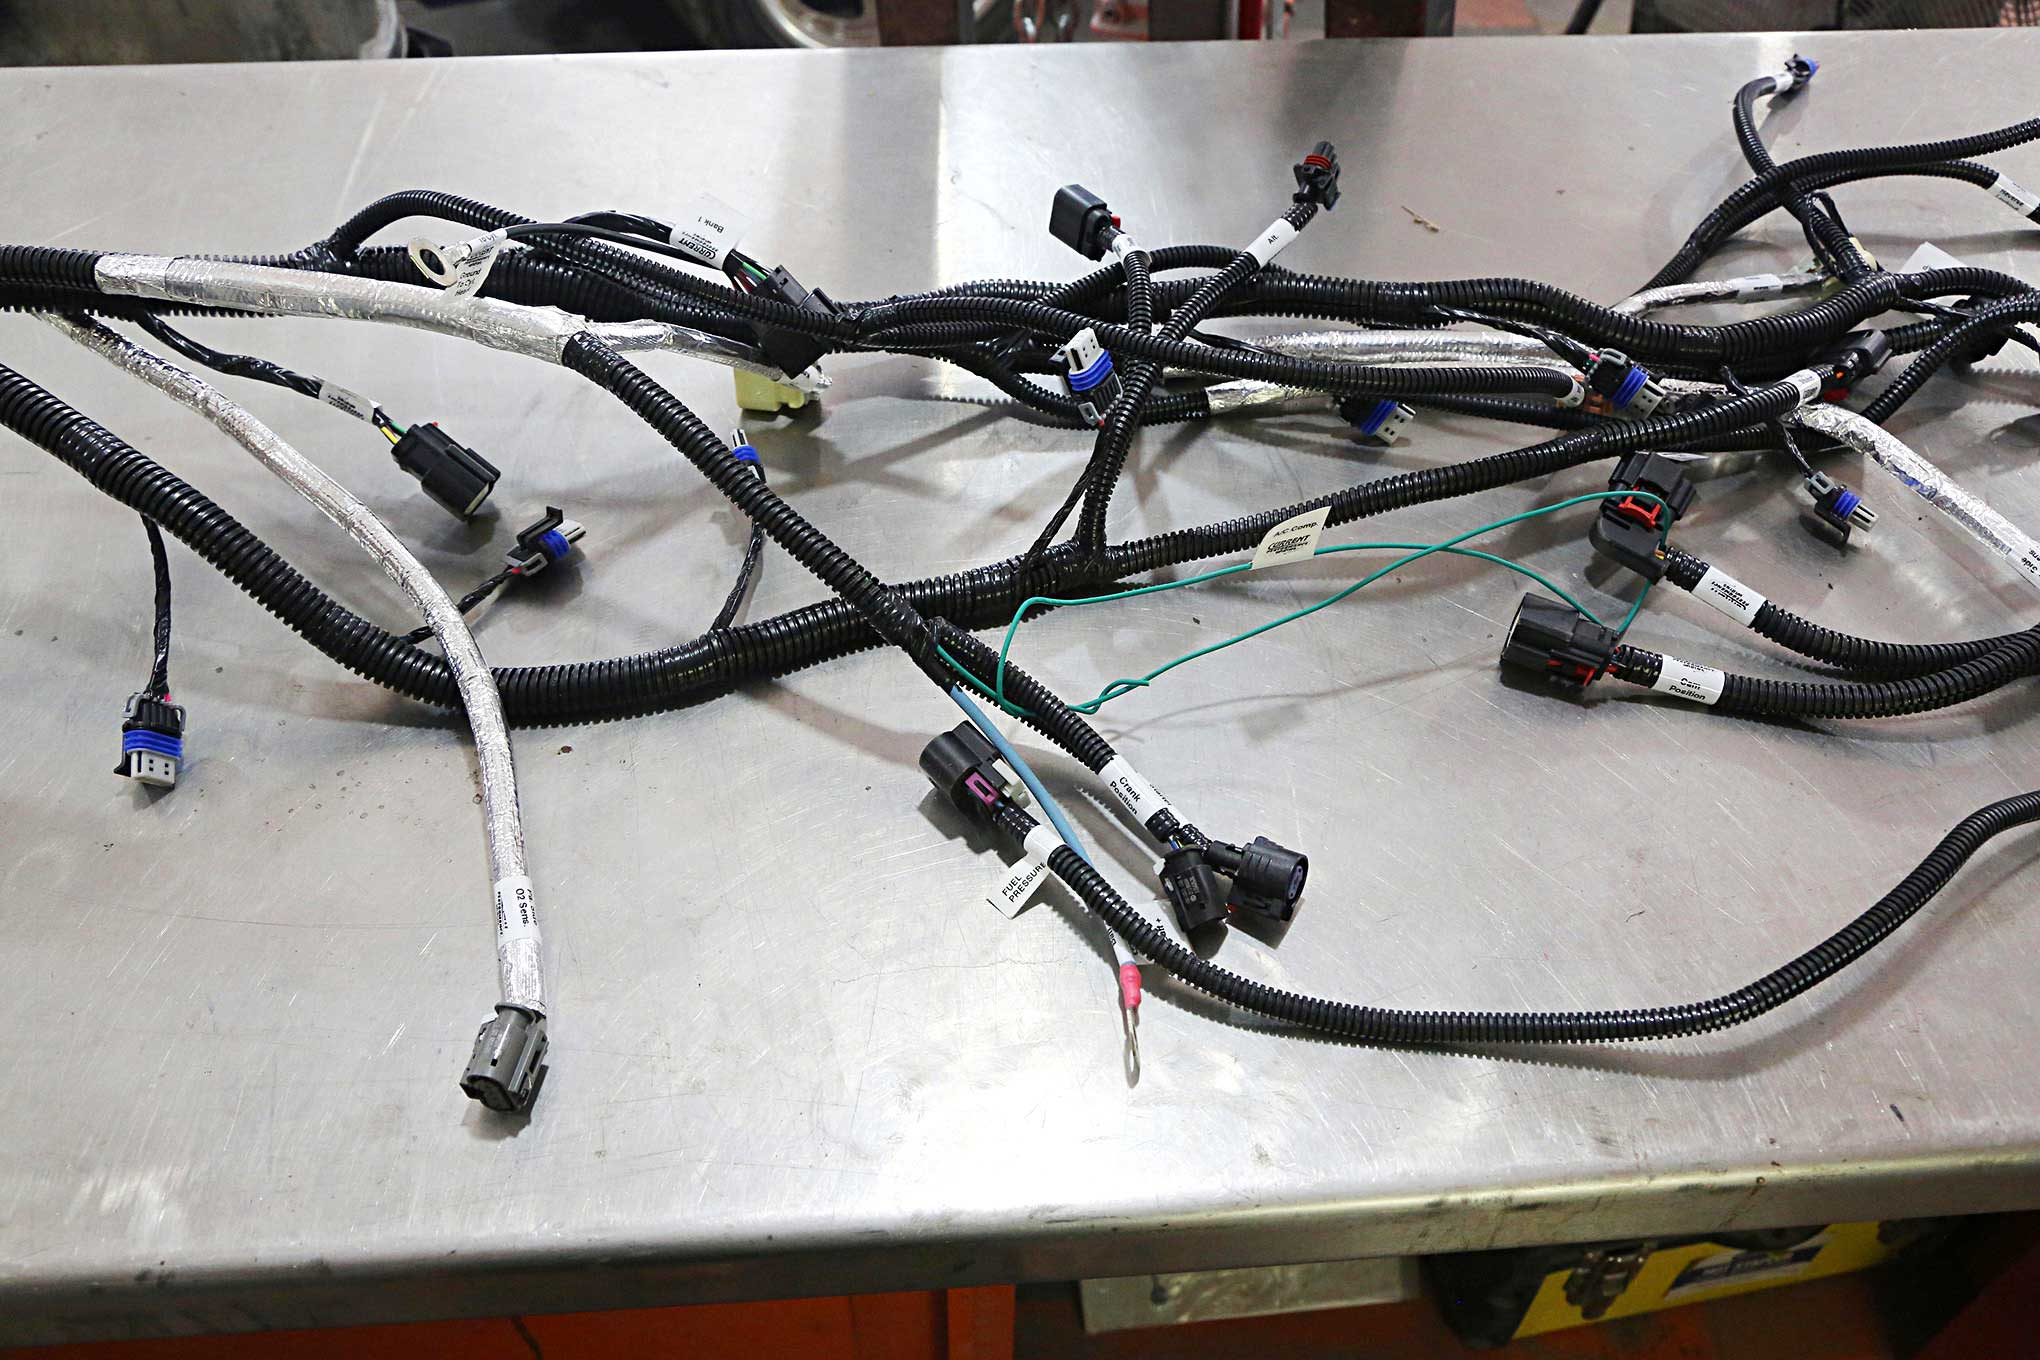 Lt1 Wiring Harness Modification